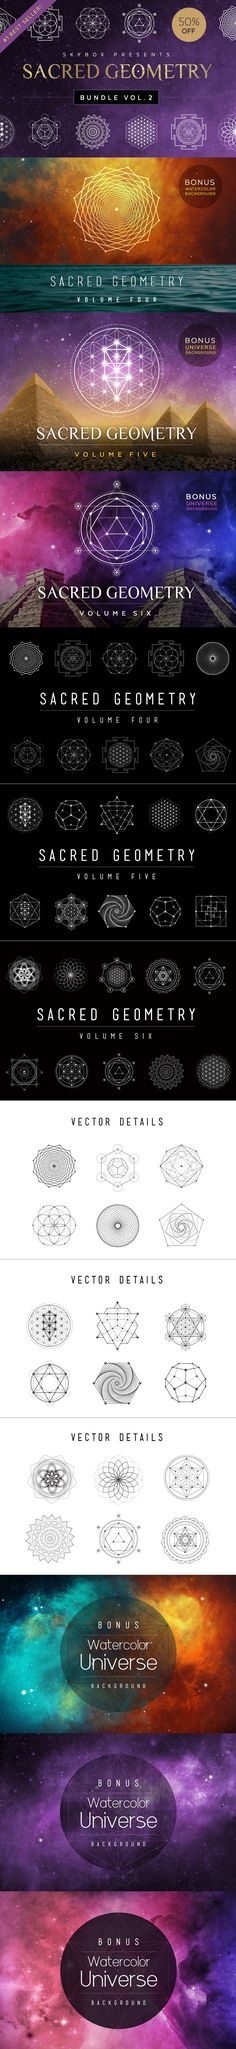 Our Sacred Geometry Vector Bundle Vol. 2 comes with 27 completely unique handcrafted design elements! It includes all three Sacred Geometry Sets – Volumes 4-6!  Sacred Geometry Bundle Vol. 1 is a best-seller across all of our shops and was included in the Top 100 Products of 2015 –– Reg. Price: $33 Including Backgrounds – Deal Price: $16 – SAVE: 50%